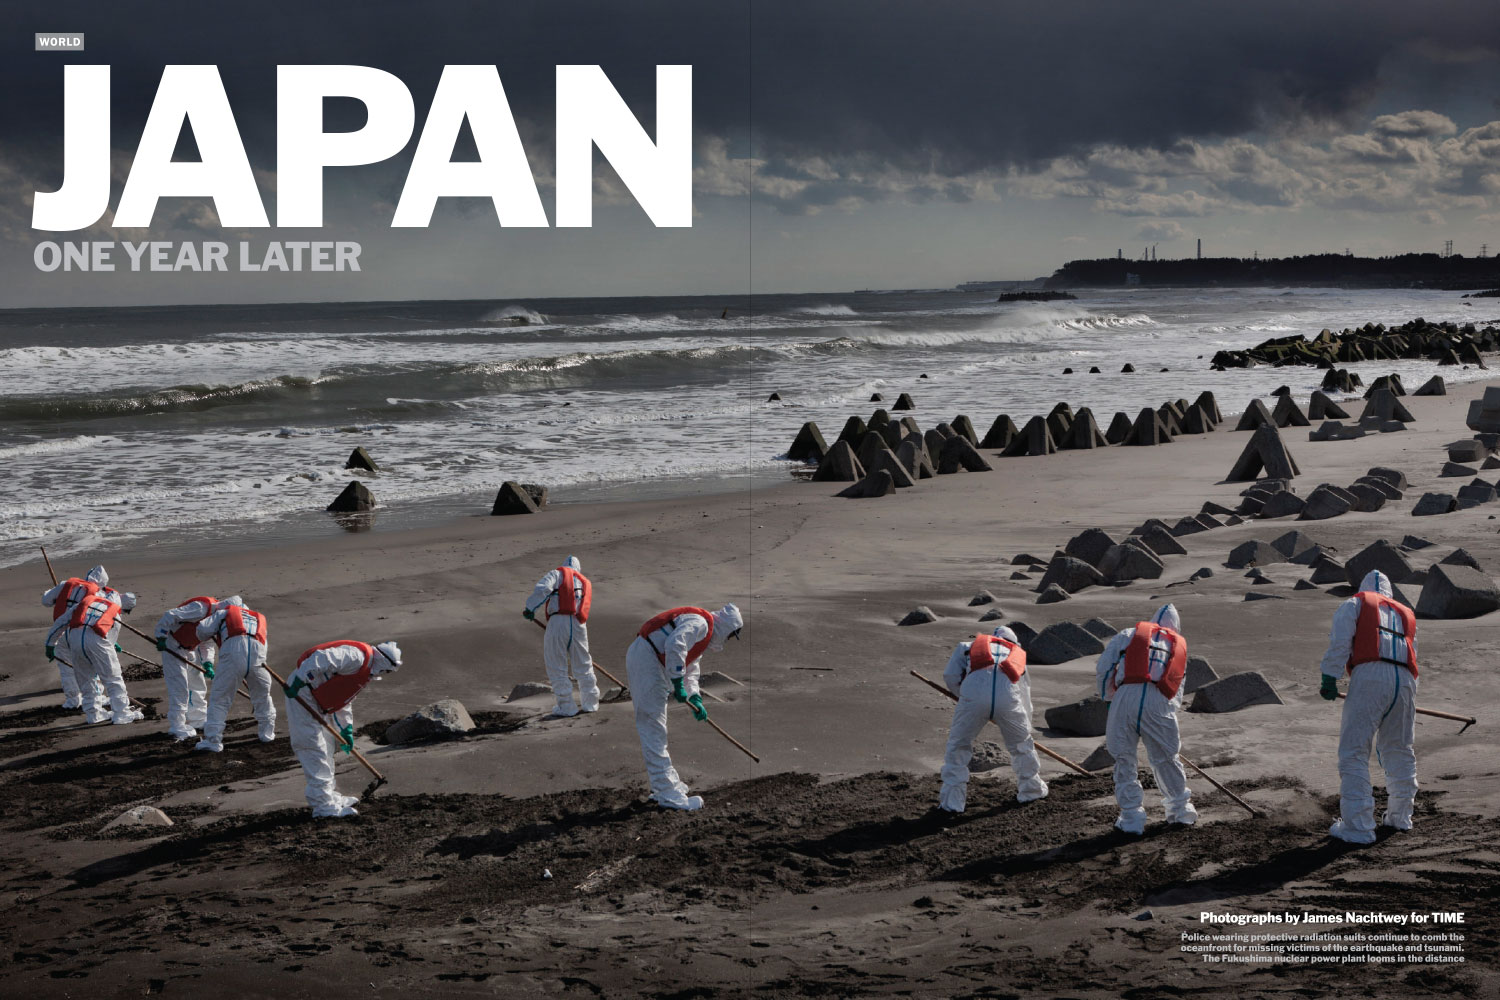 From  Japan One Year Later.  March 12, 2012 issue.